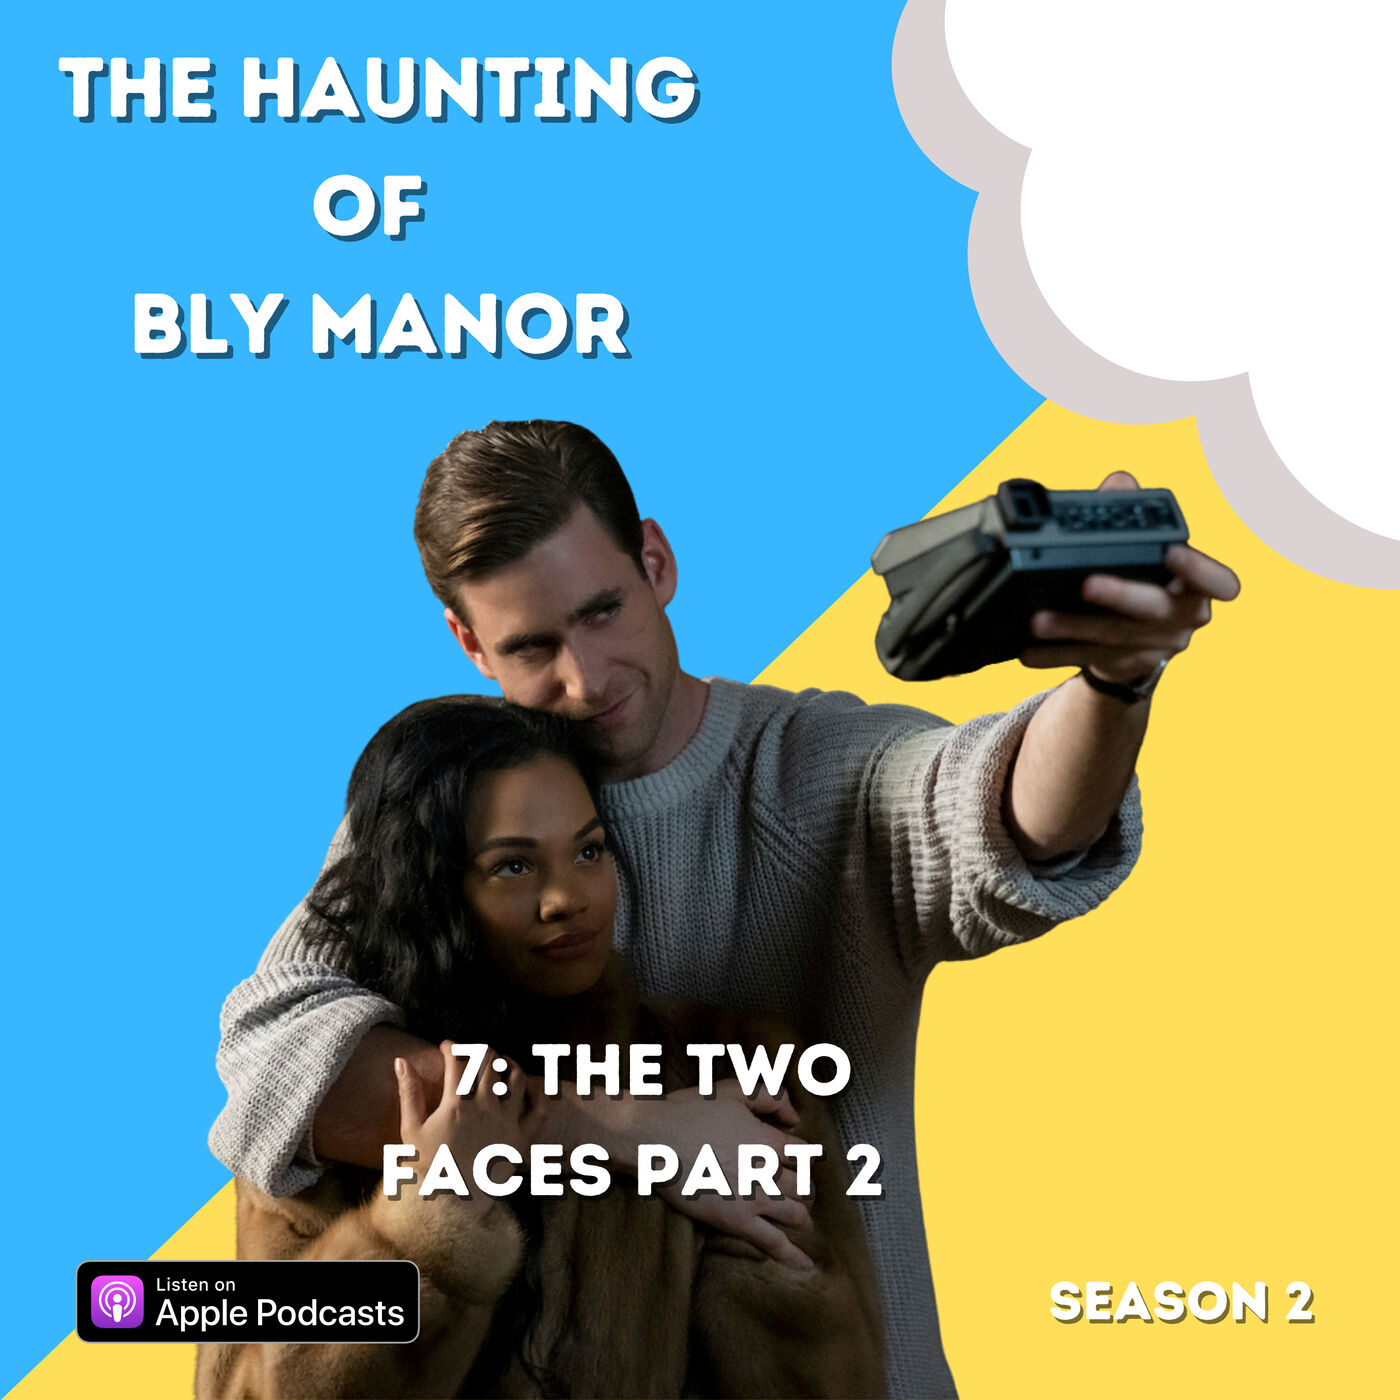 The Haunting of Bly Manor 7: The Two Faces Part 2